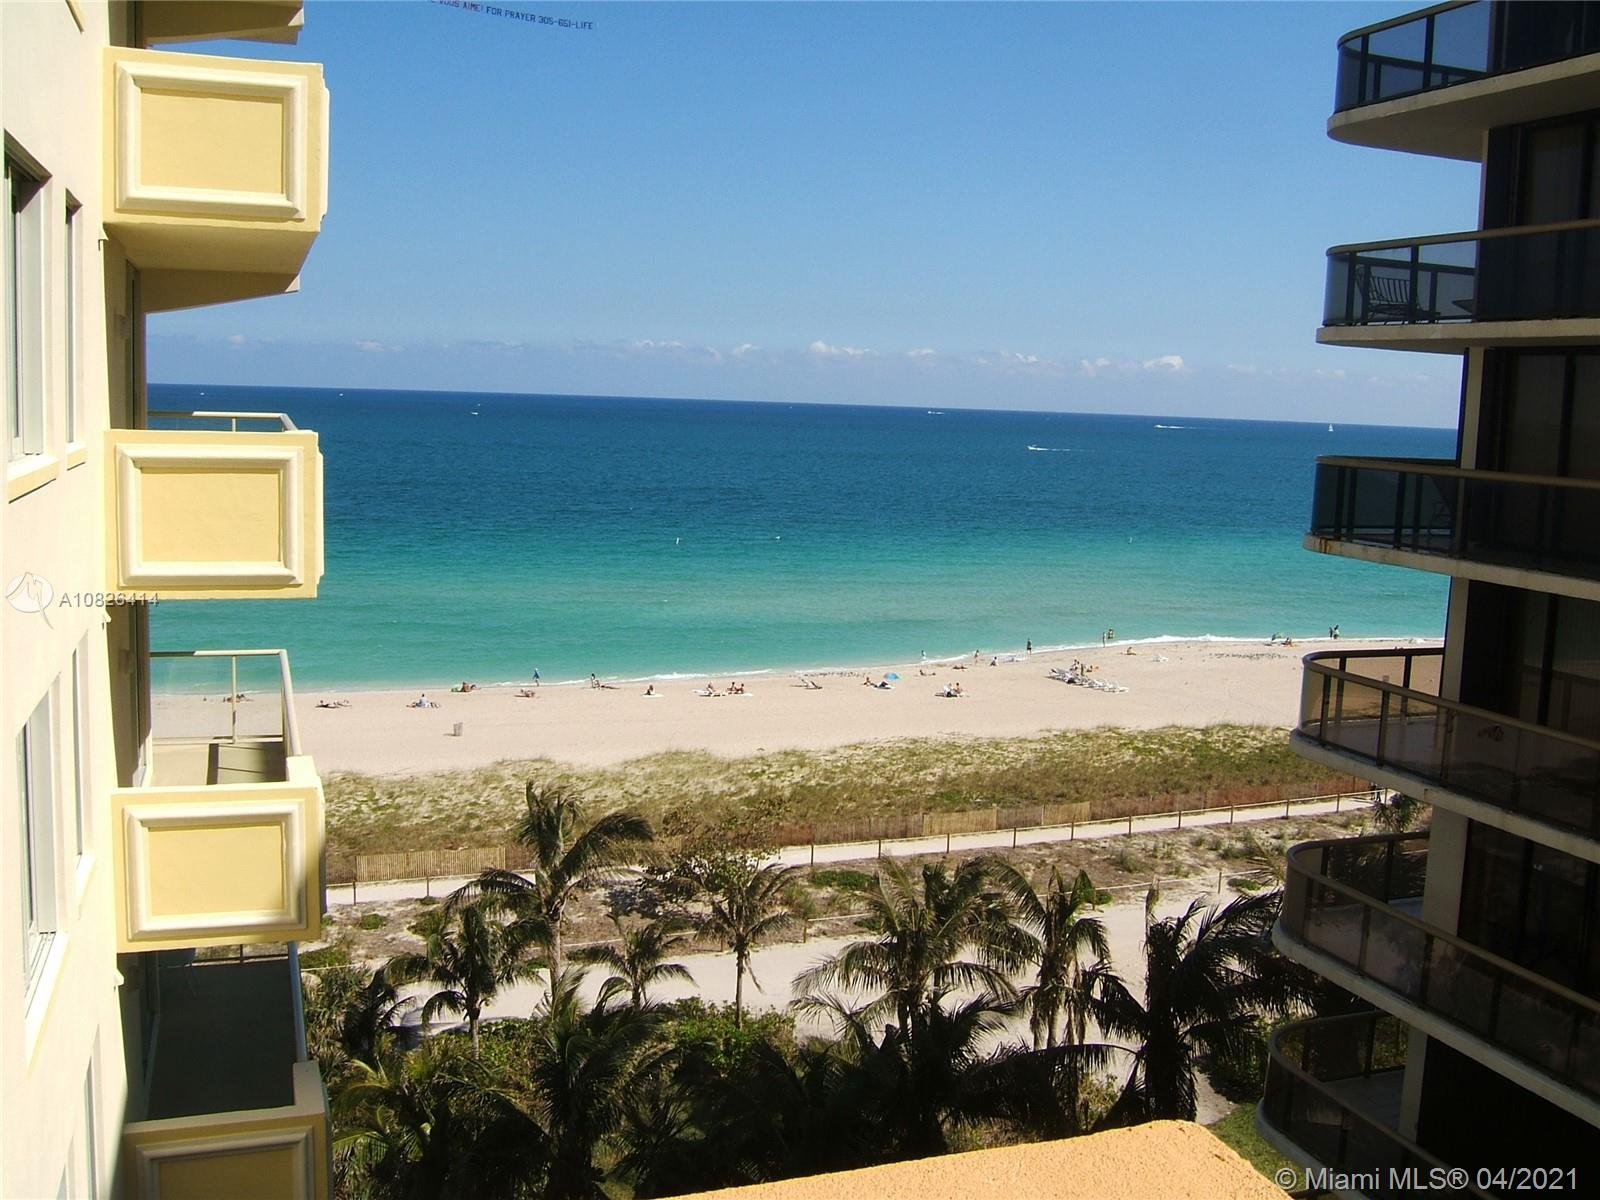 Spiaggia #704 - 9499 Collins Ave #704, Surfside, FL 33154